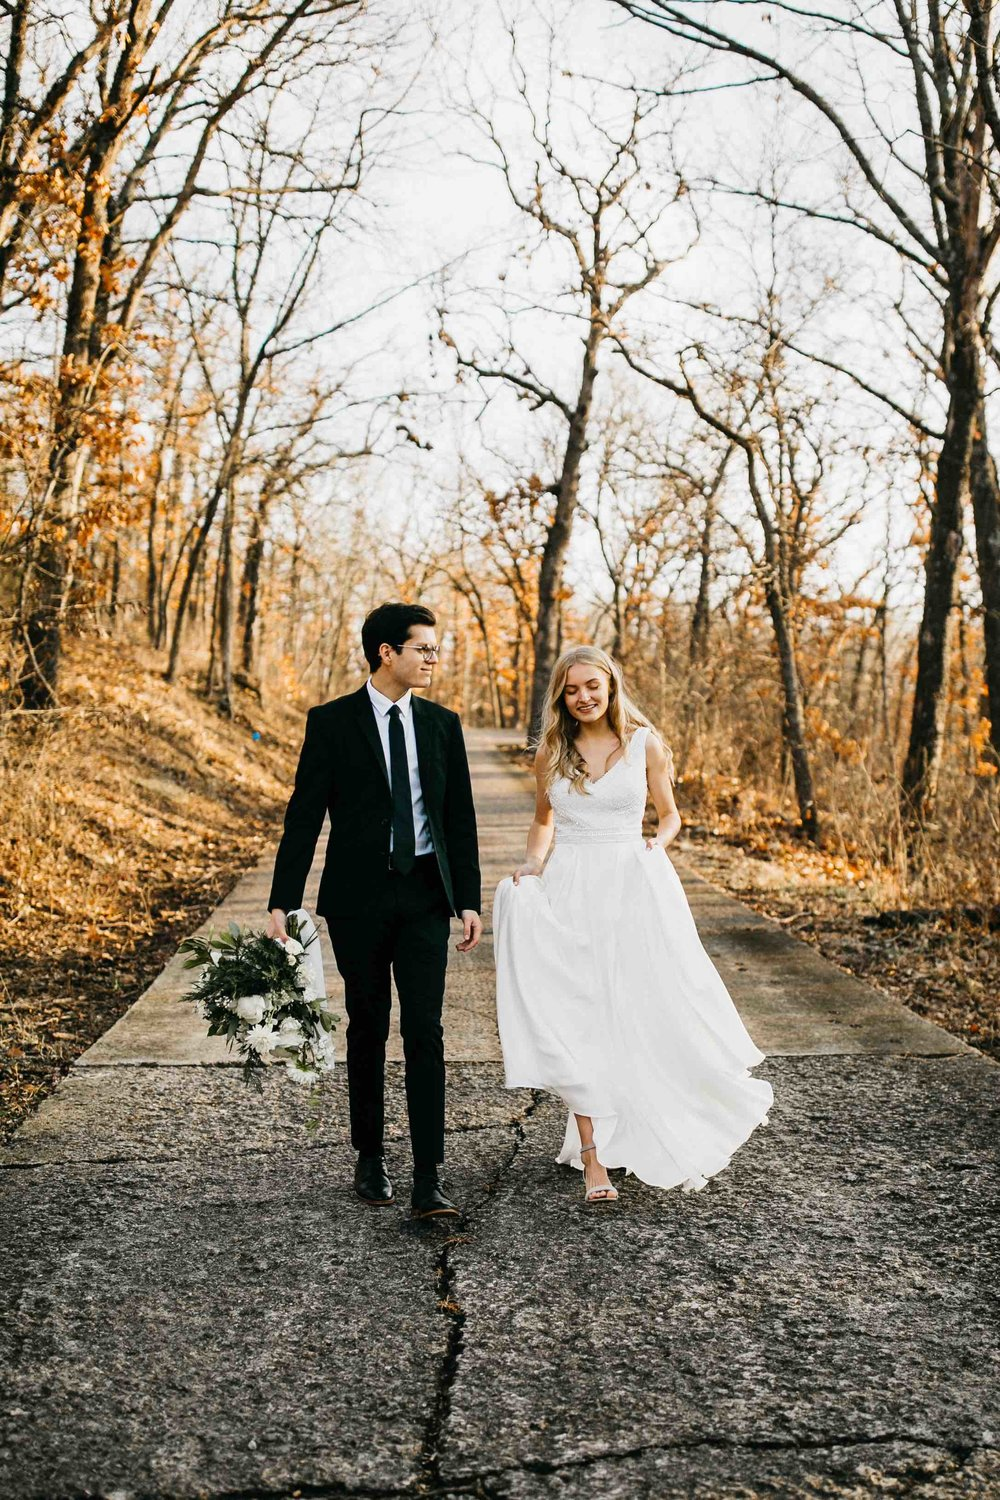 winter elopement - kailey watson photography